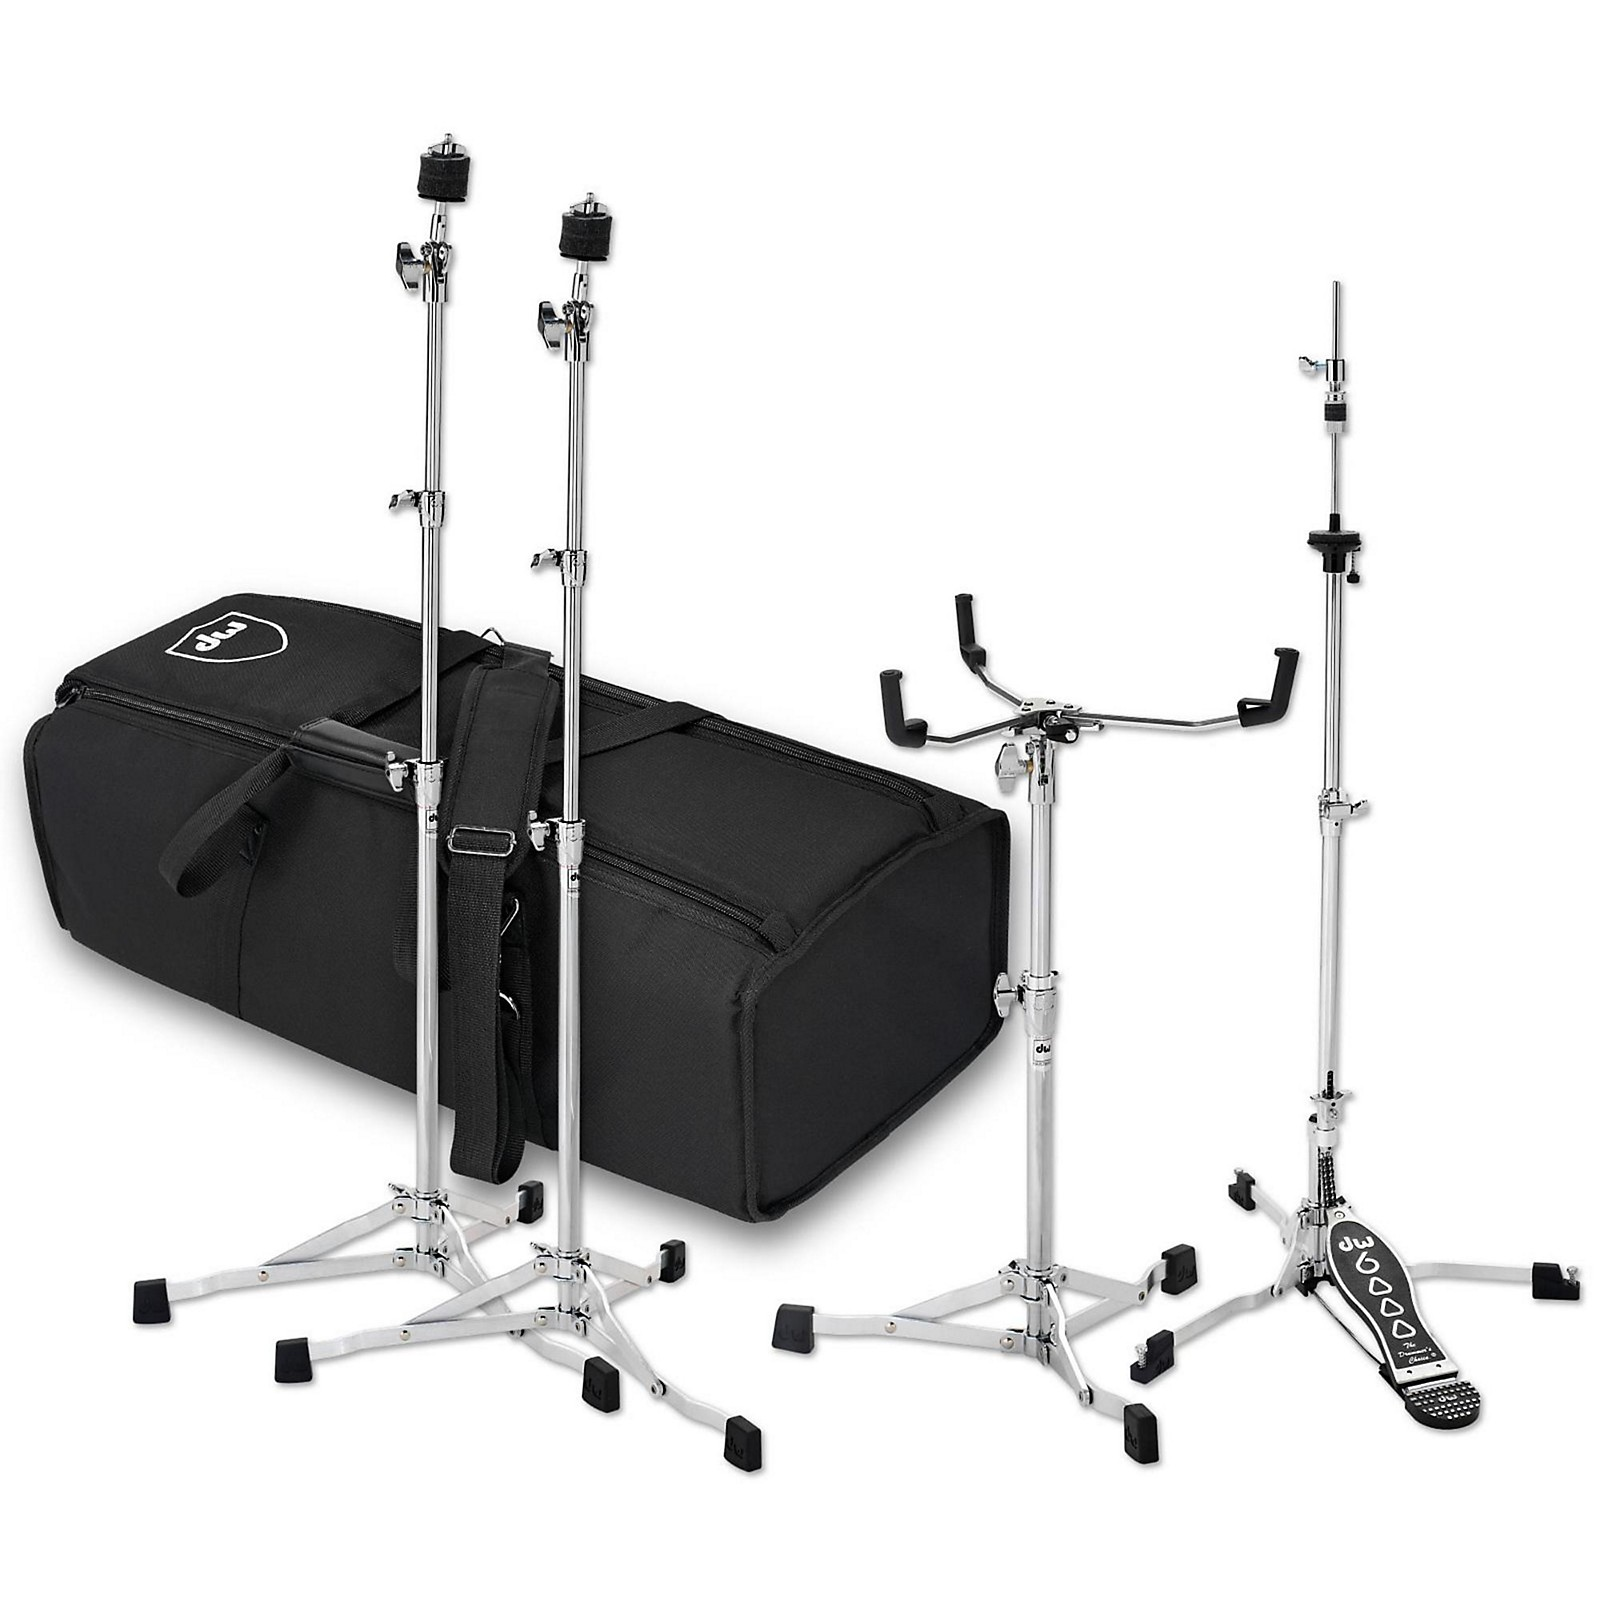 DW 6000 Series Ultralight Hardware Pack with Bag